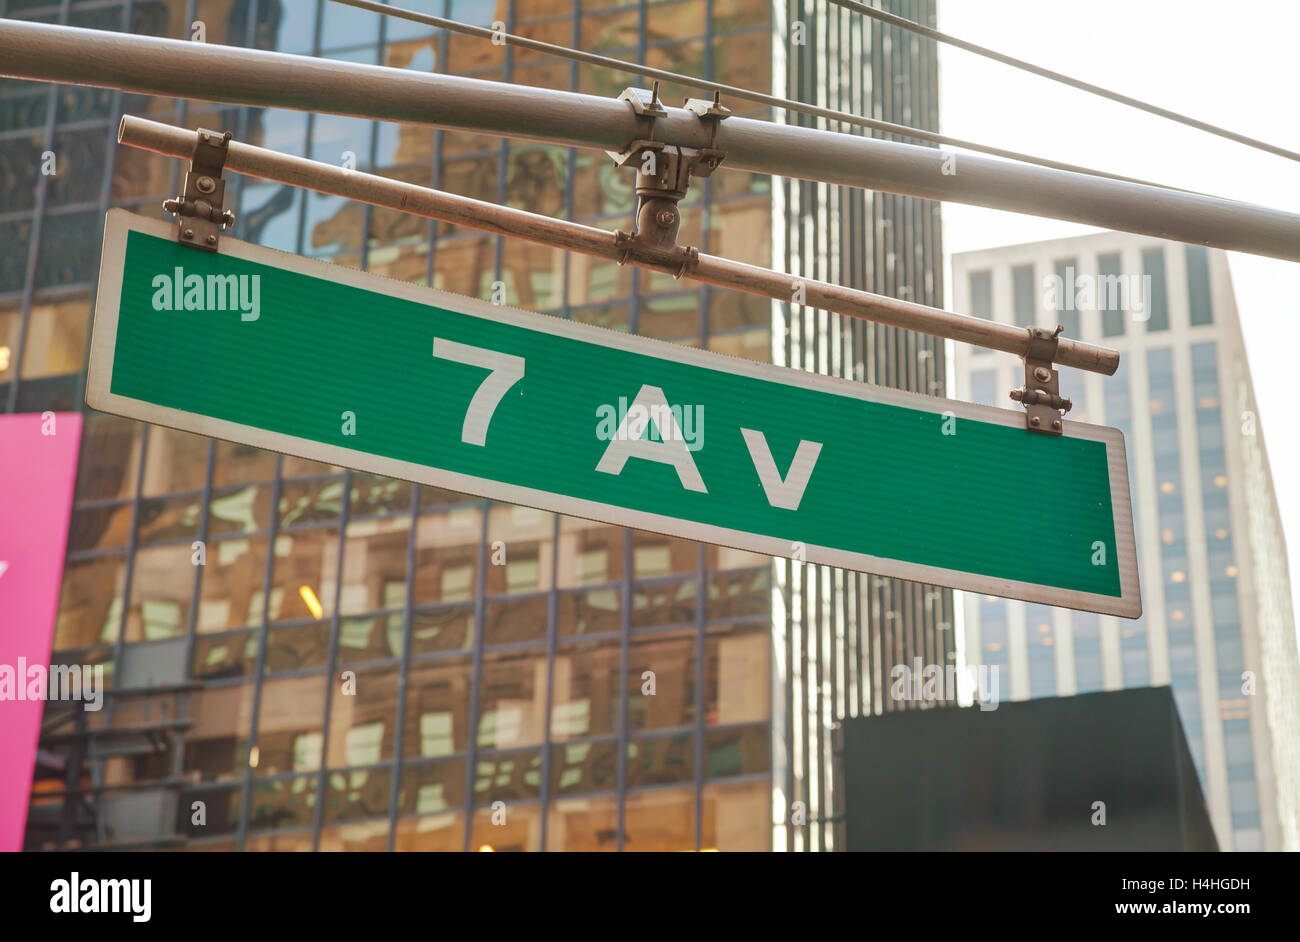 Seventh avenue sign in New York City Stock Photo